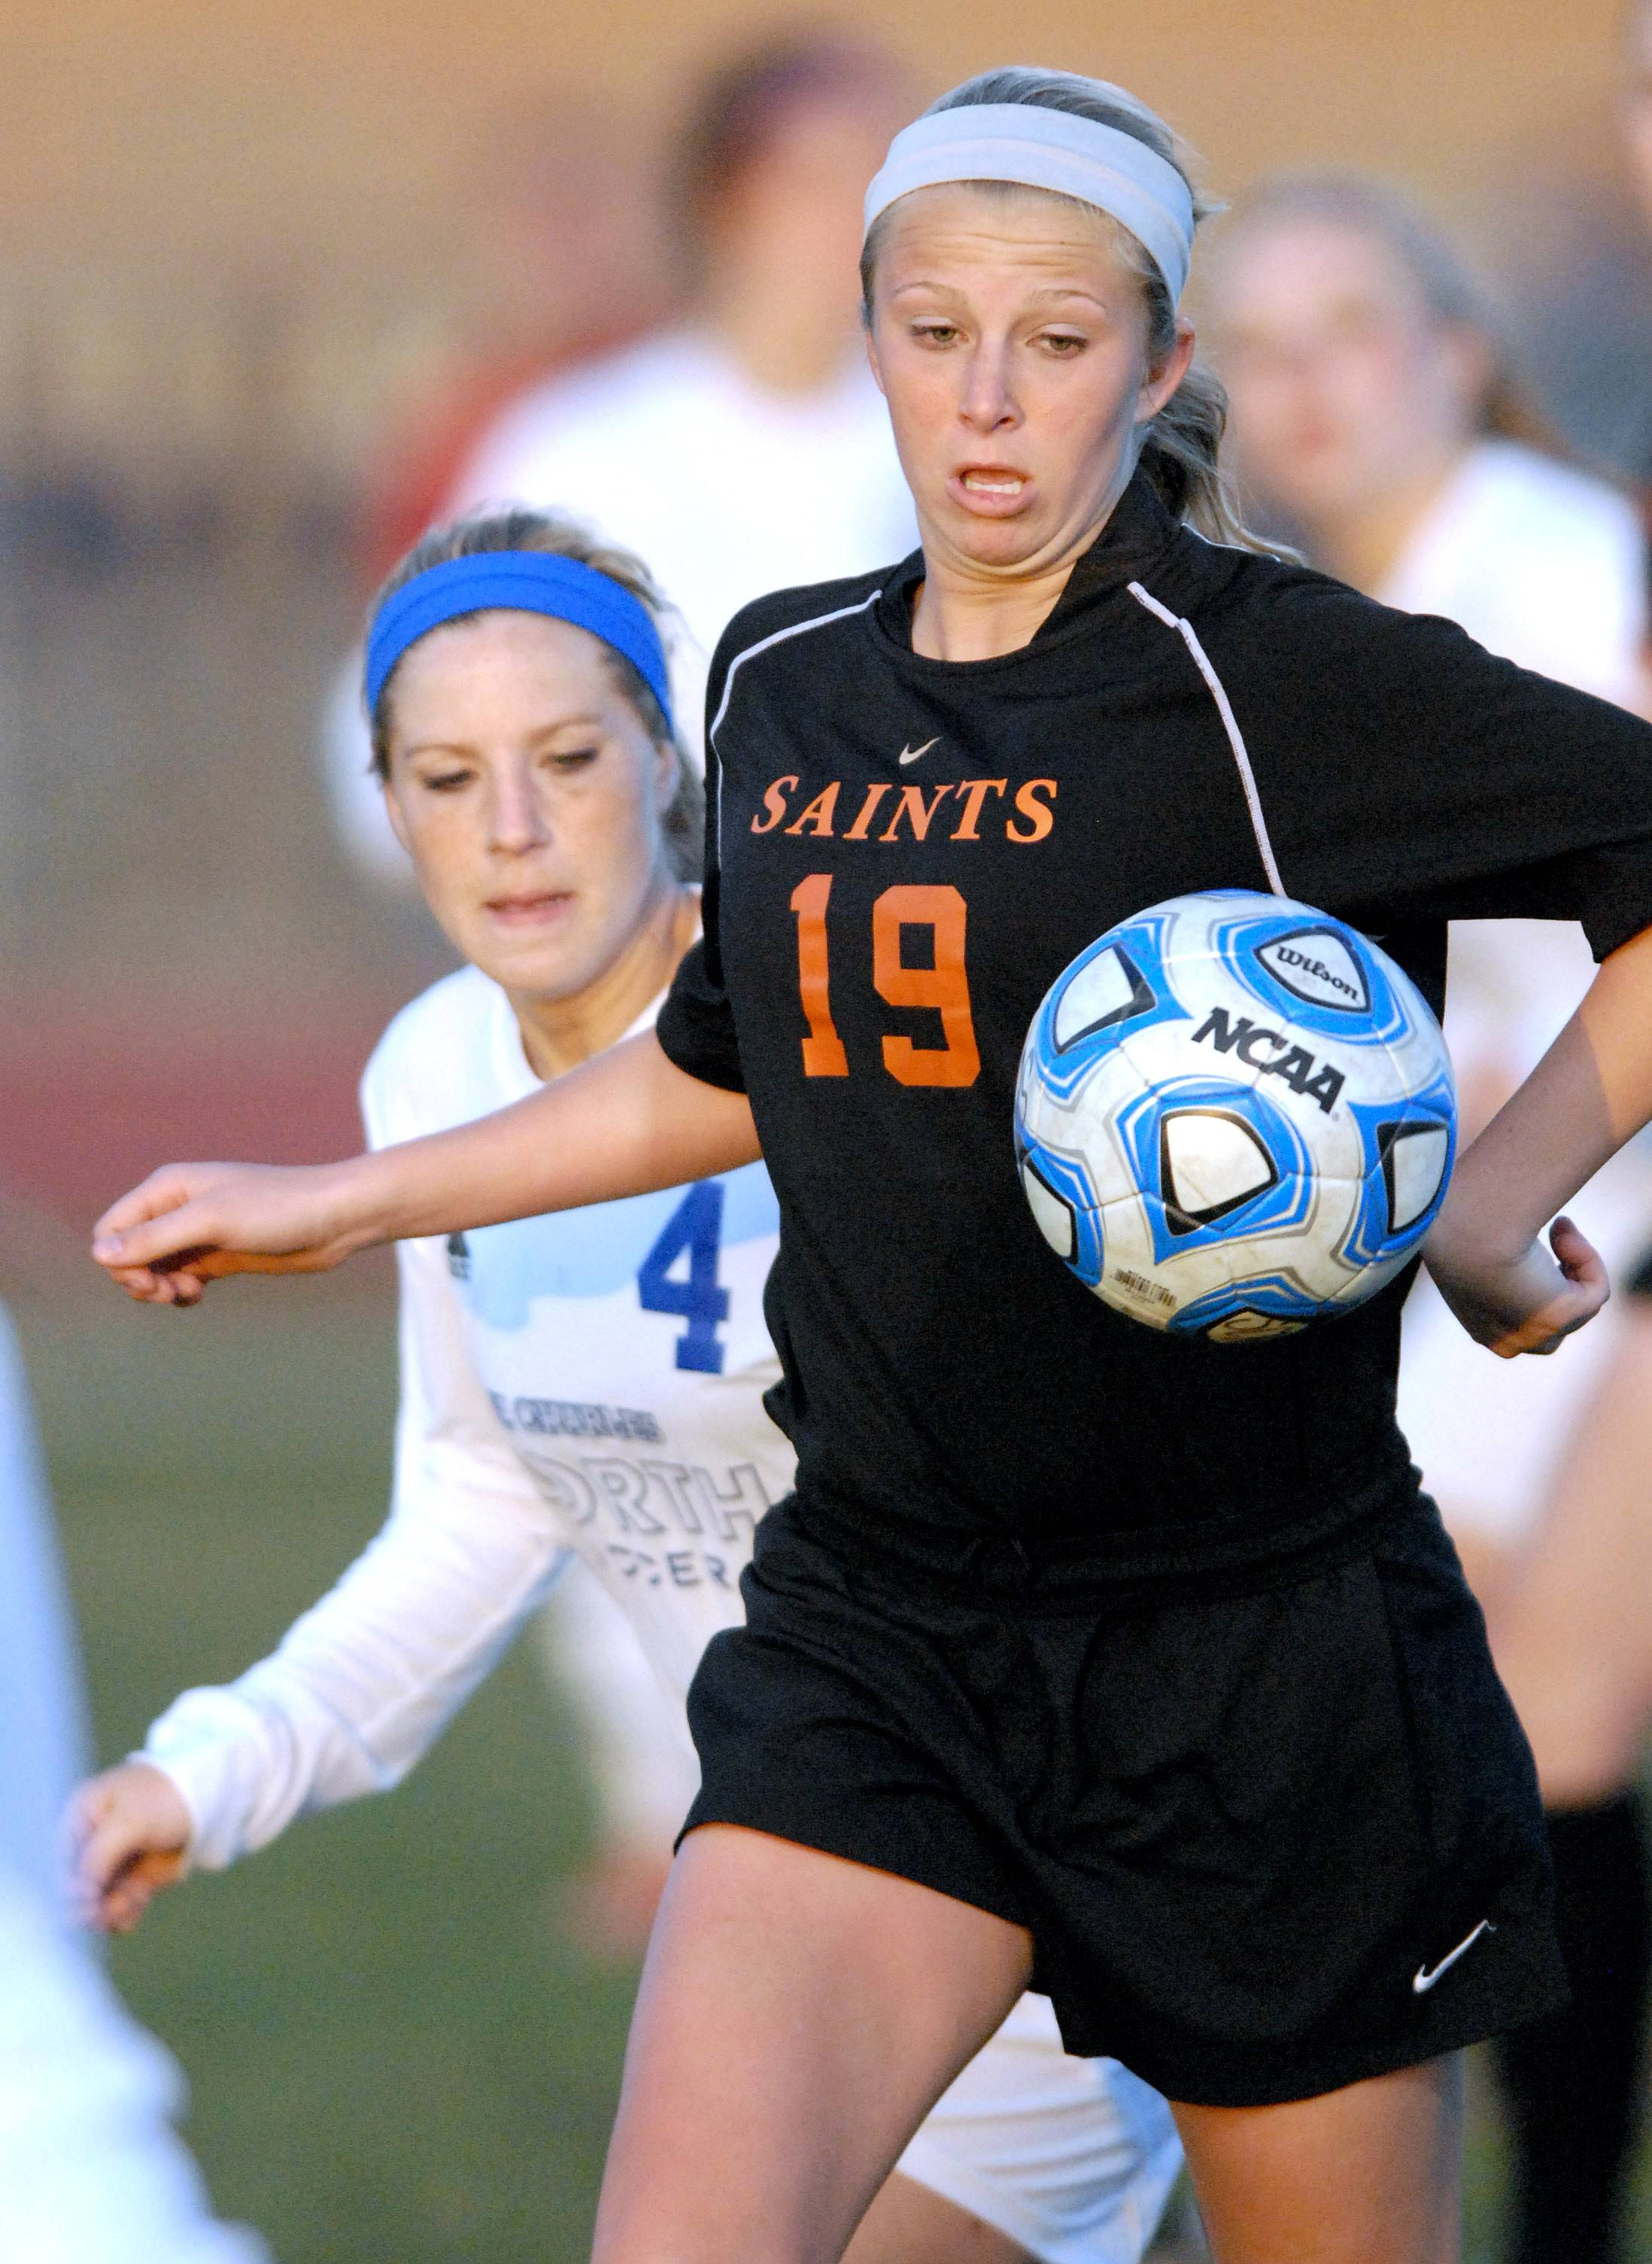 St. Charles North's Jenny Barr, left, trails St. Charles East's Sophie Jendrzeczyk as she gains control of the ball in the first half on Tuesday, April 22.